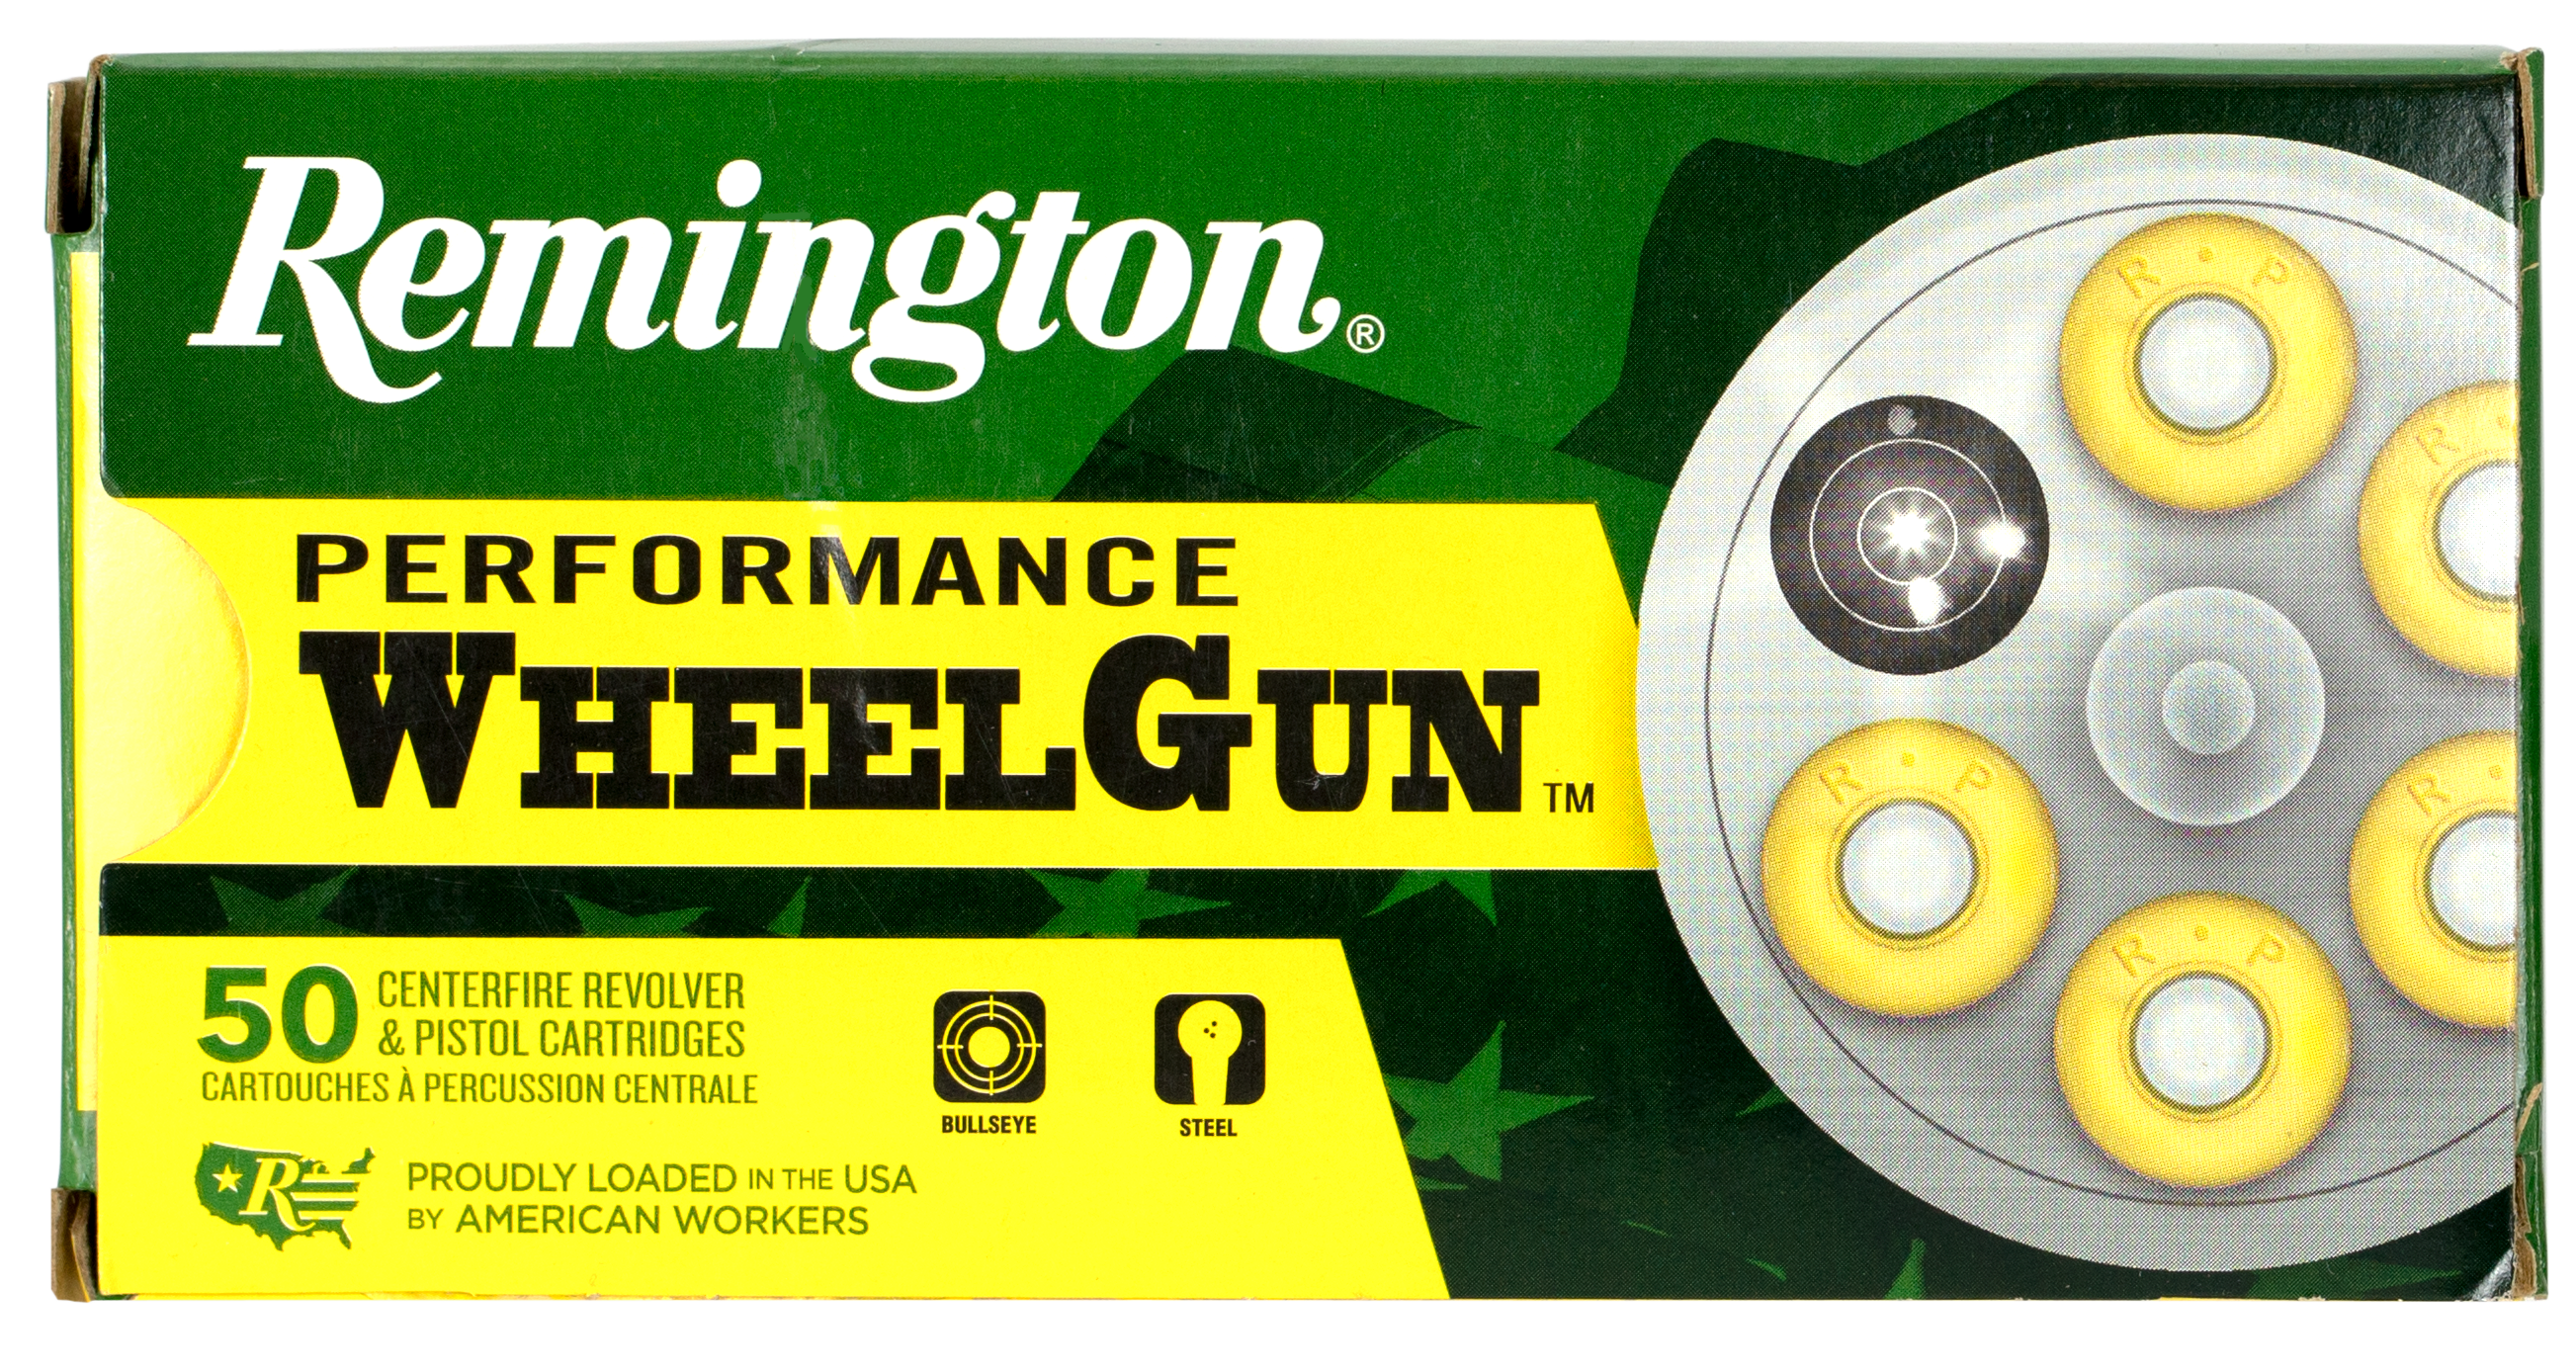 Remington Performance WheelGun Ammunition 32 S&W 88GR Lead Round Nose Per 50